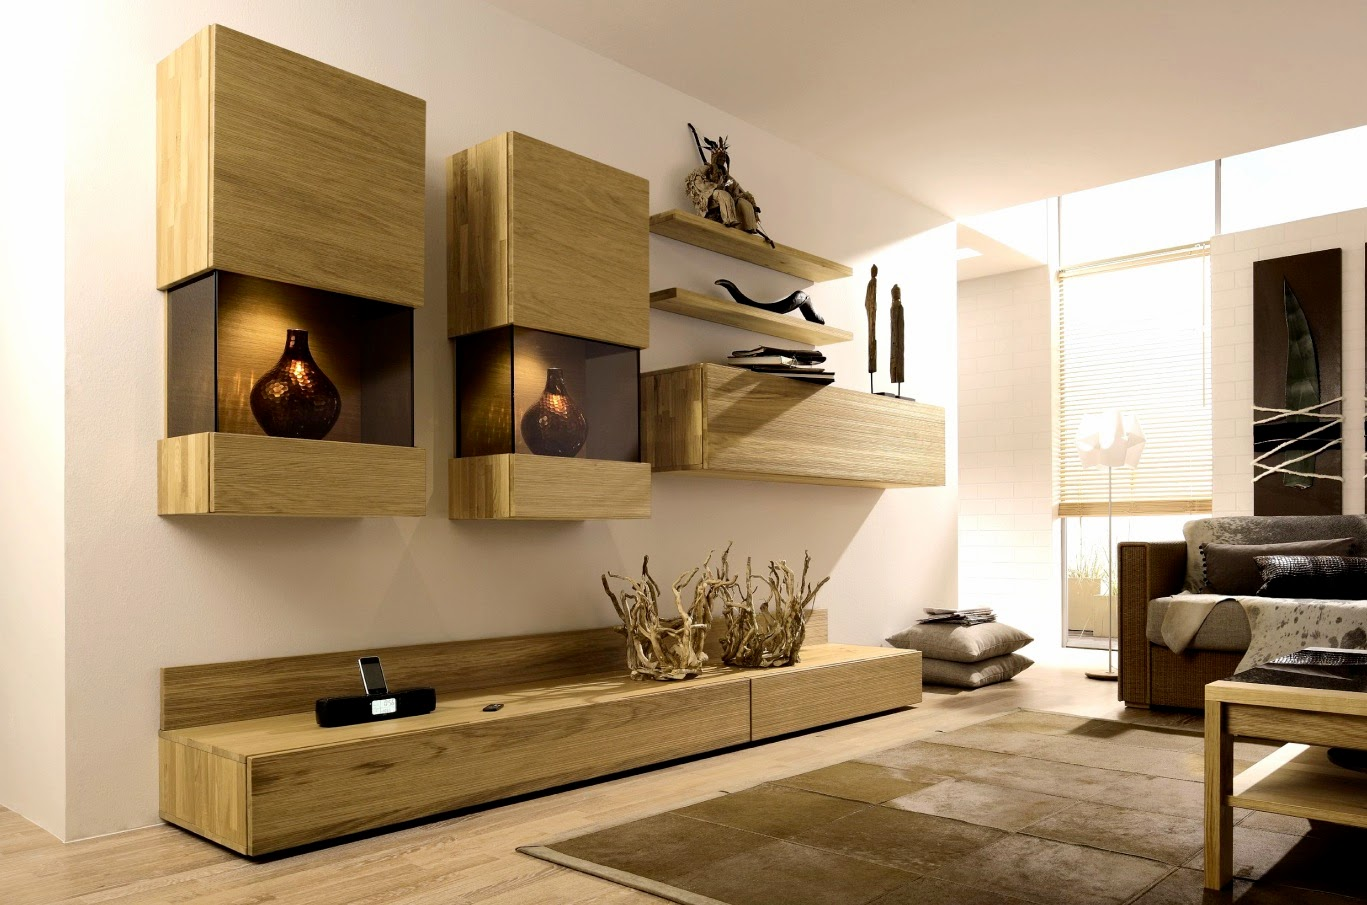 Modern Tv Wall Units For Living Room, TV Units Designs Ideas